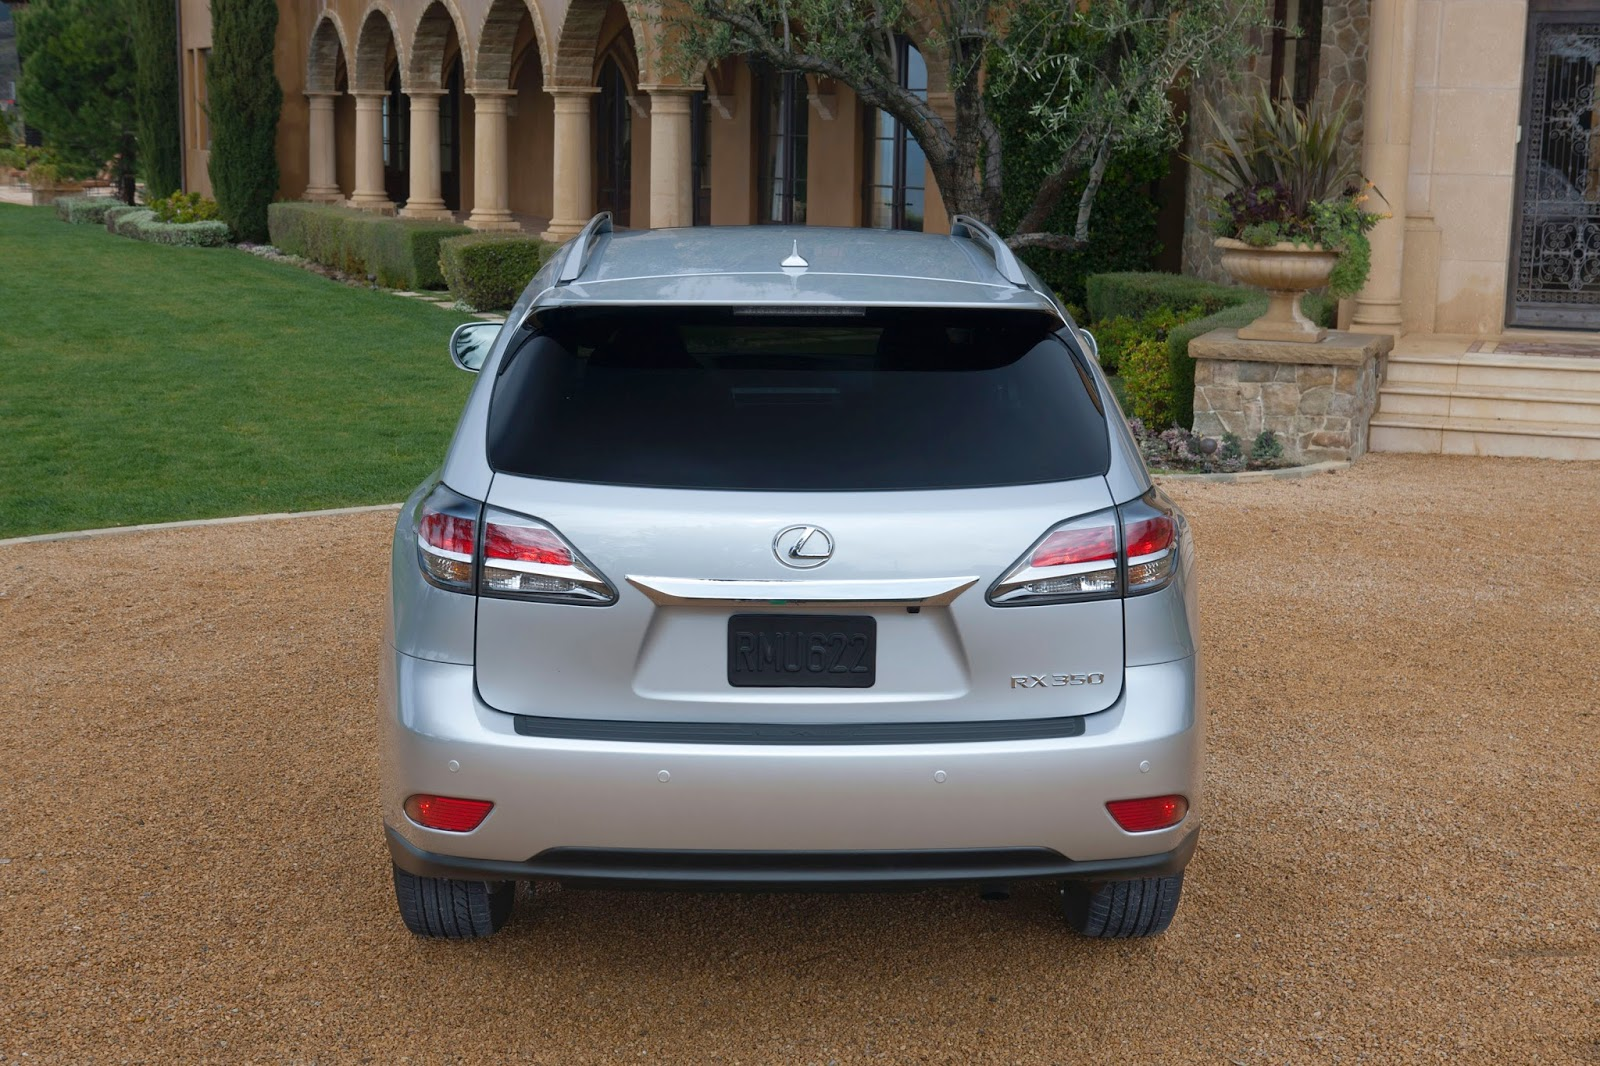 Rear view of 2014 Lexus RX350 F-Sport